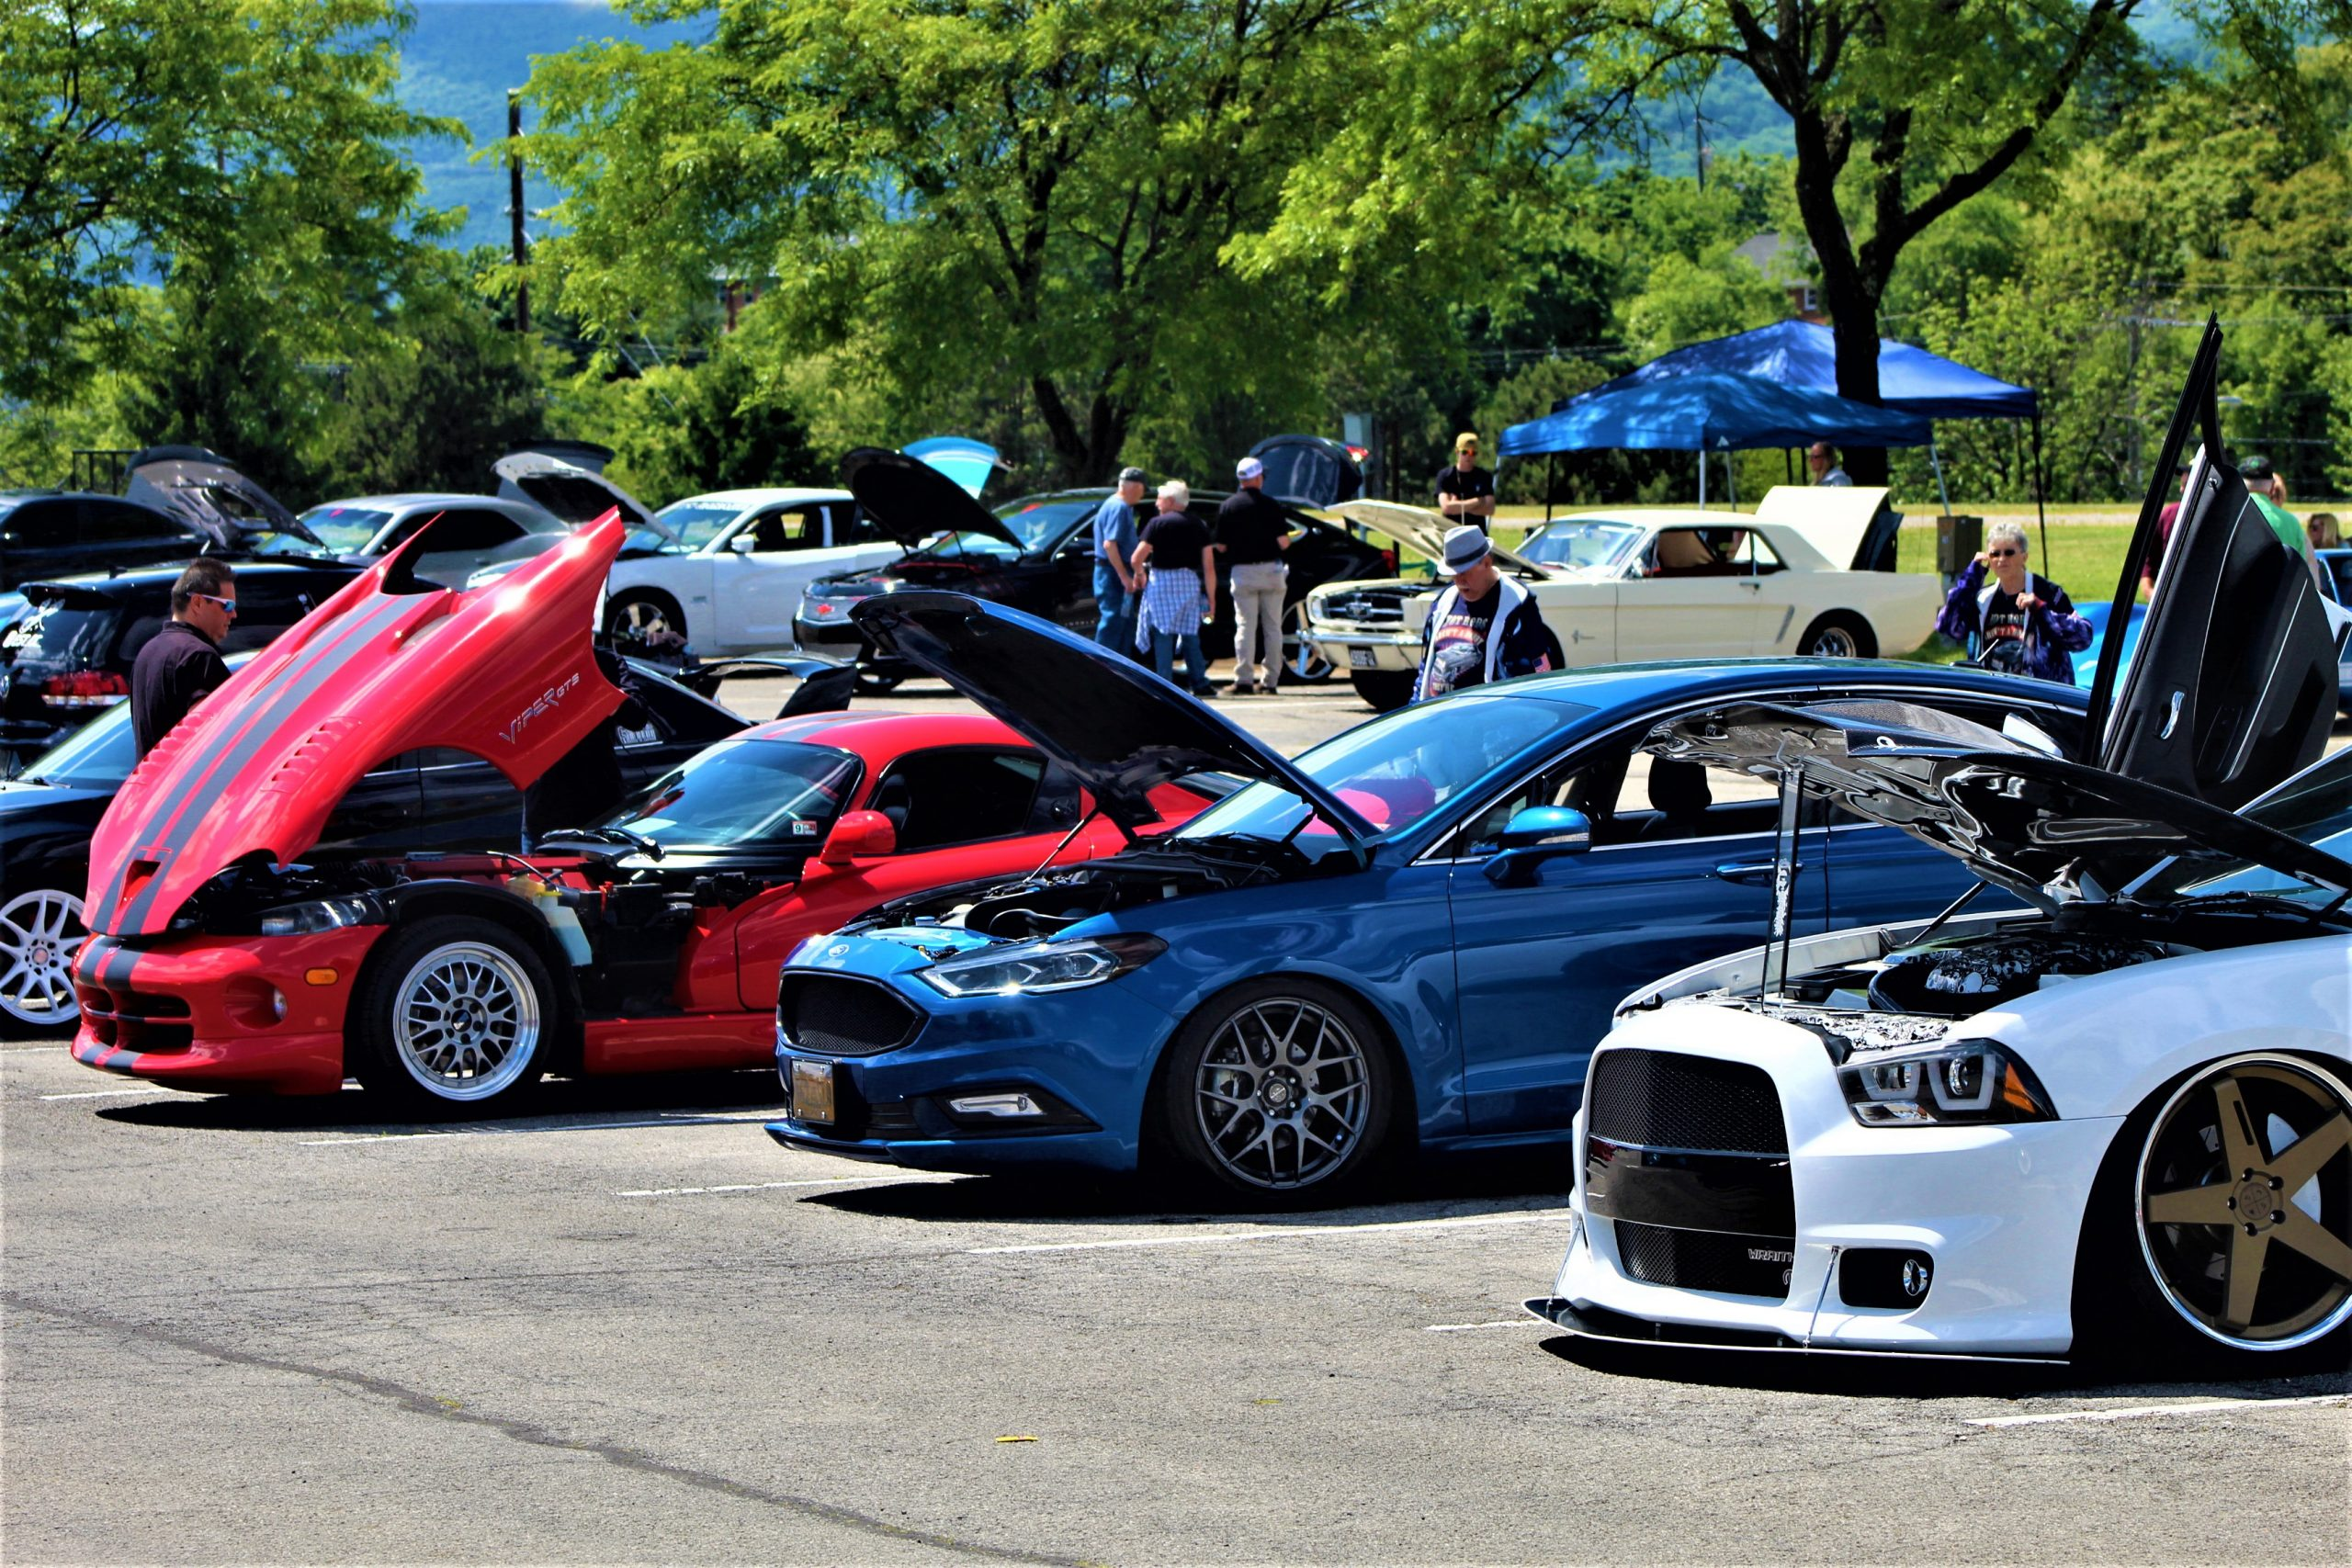 Salem spring car show attracts vehicle enthusiasts of all ages